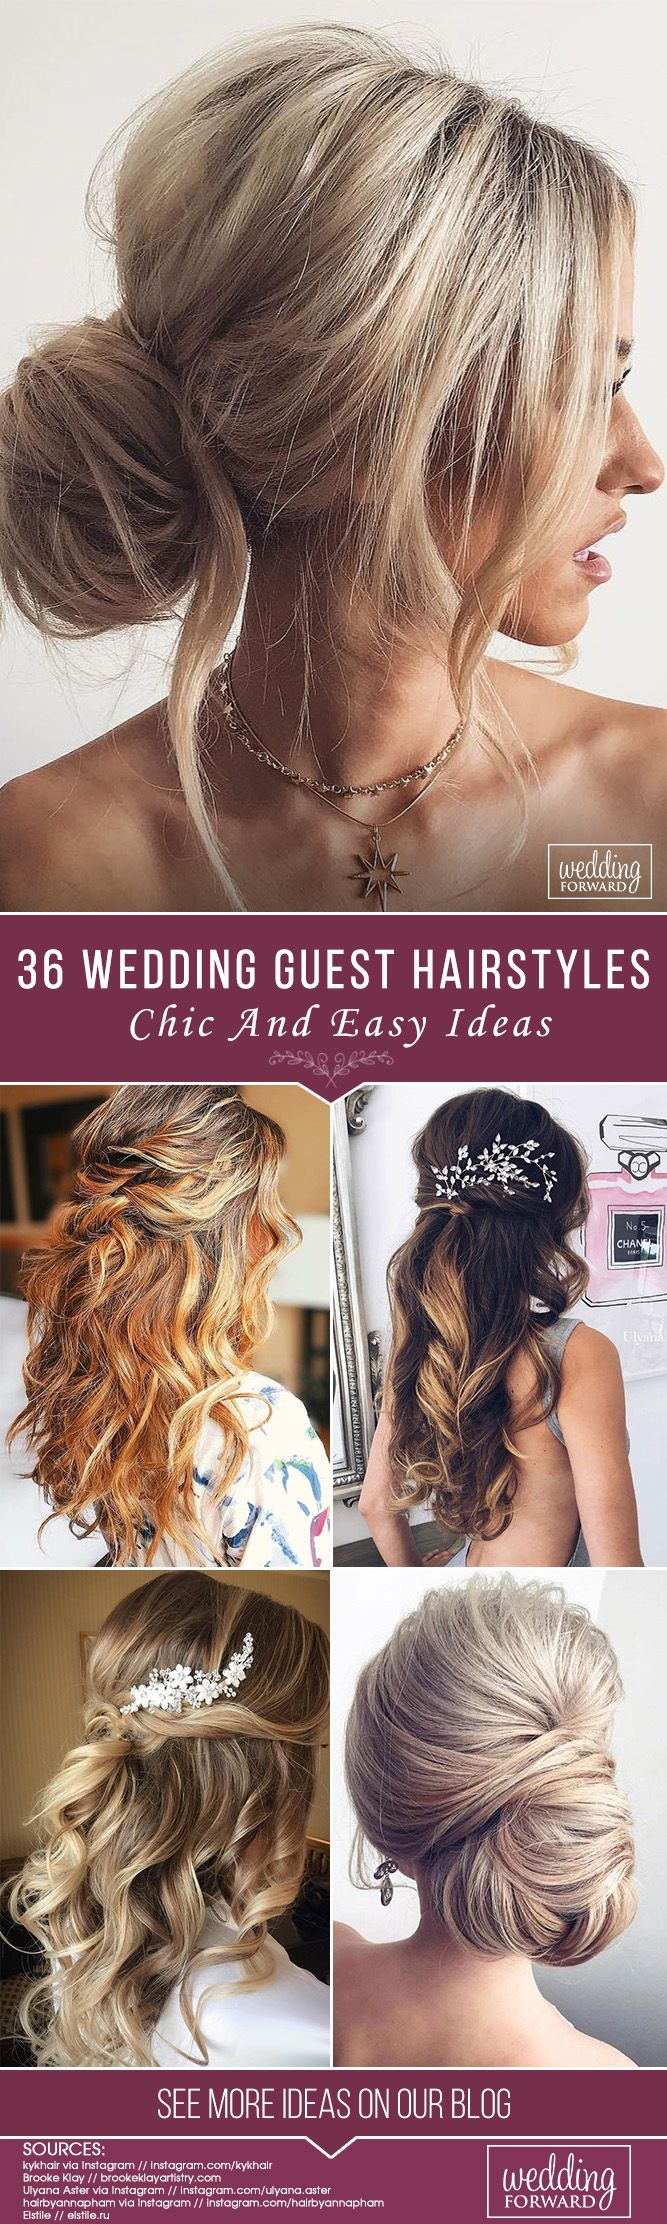 Bridal Hairstyles 36 Chic And Easy Wedding Guest